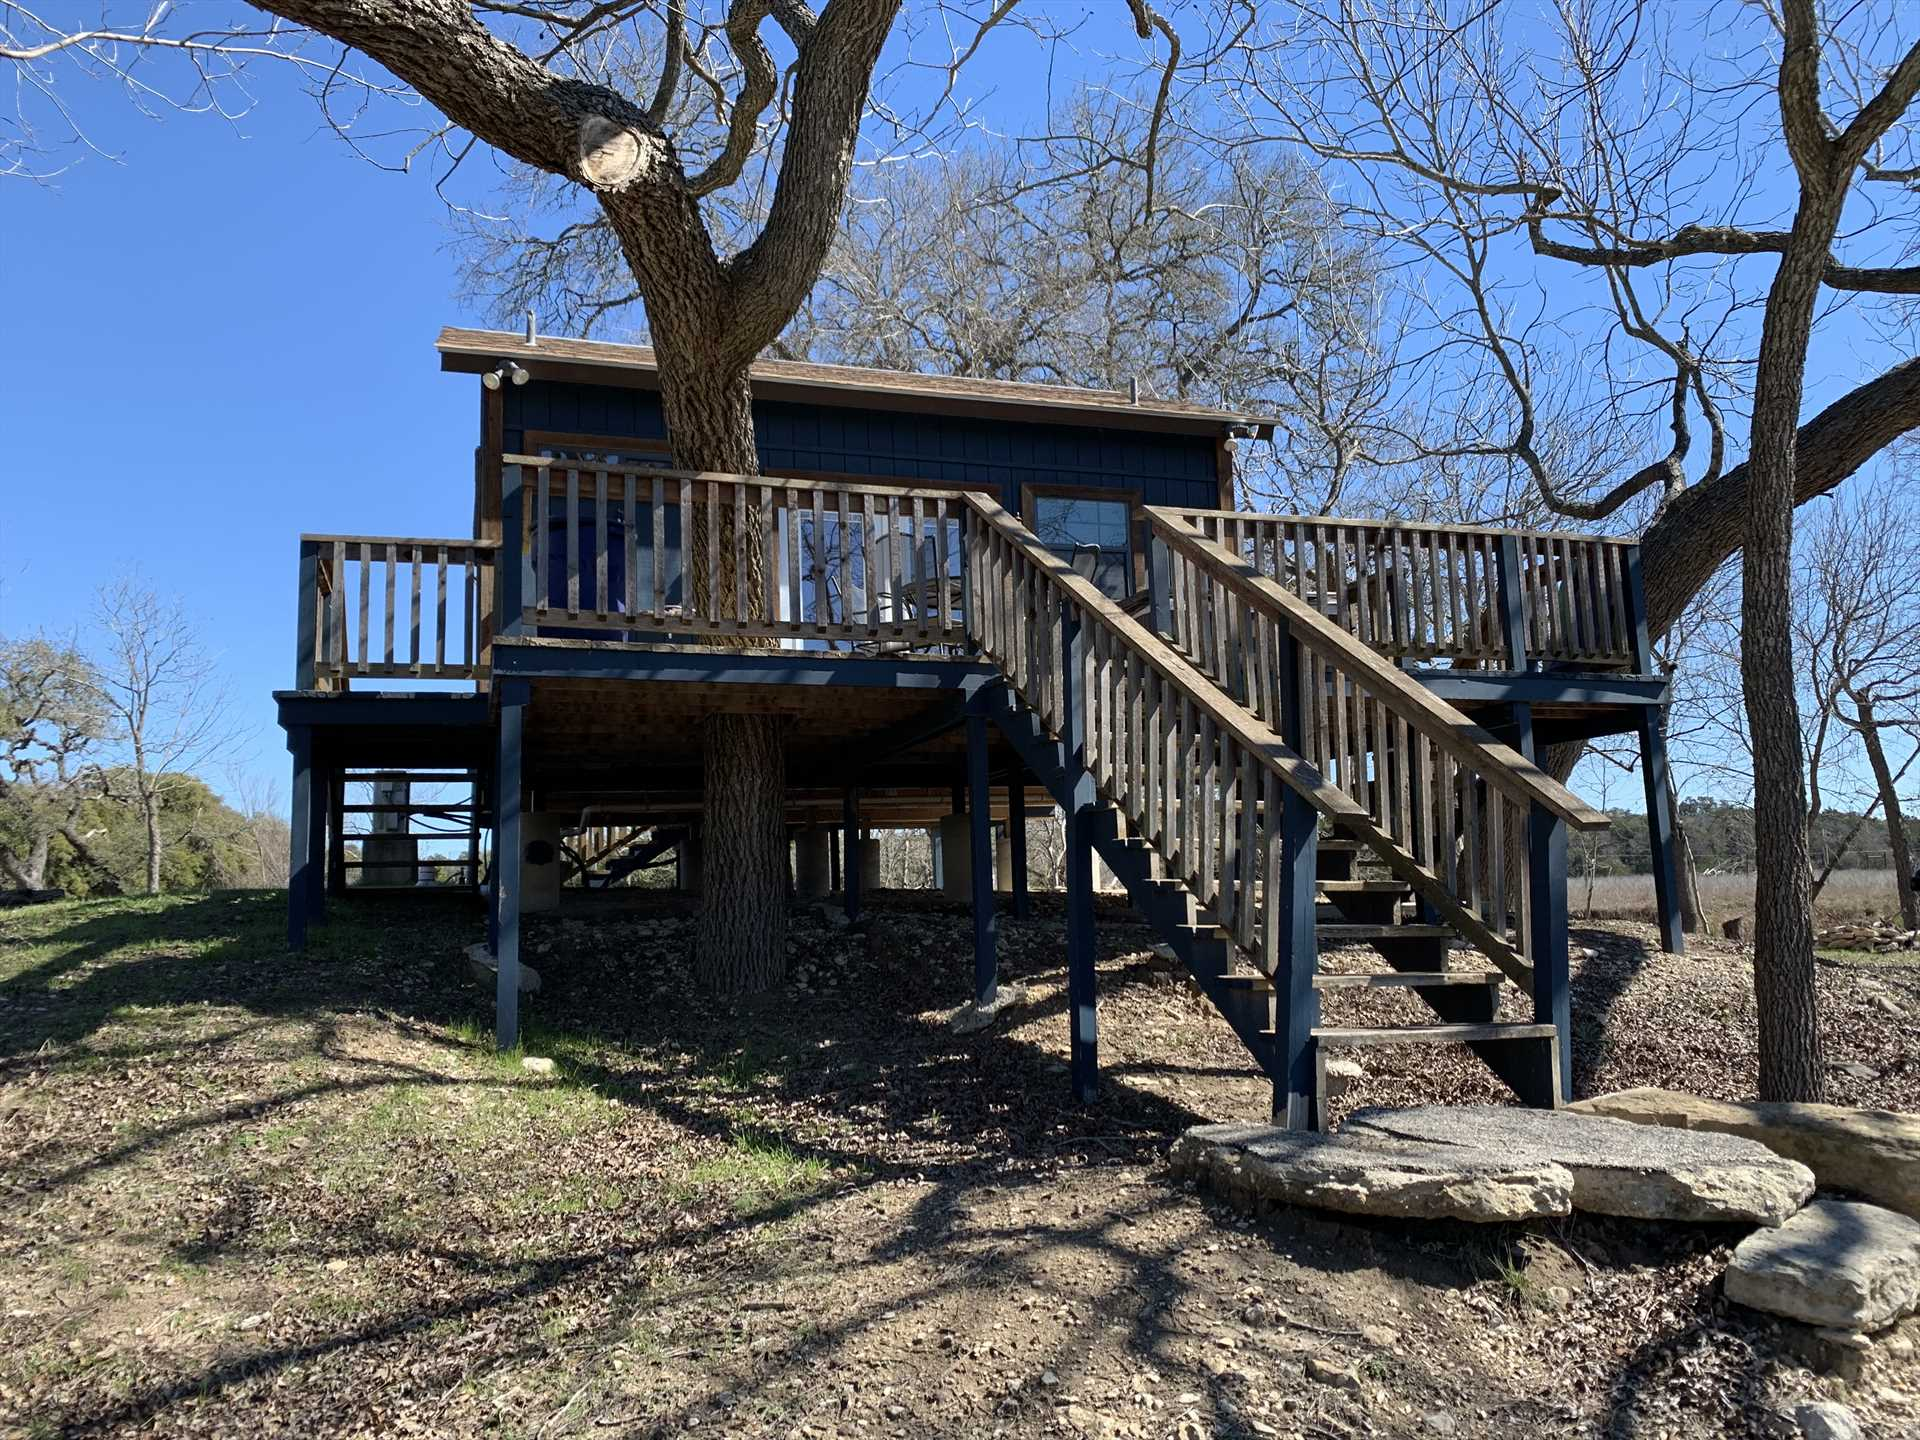 Revisit your childhood with a tree house retreat. Only THIS tree house has central air, a hot tub and a grill!